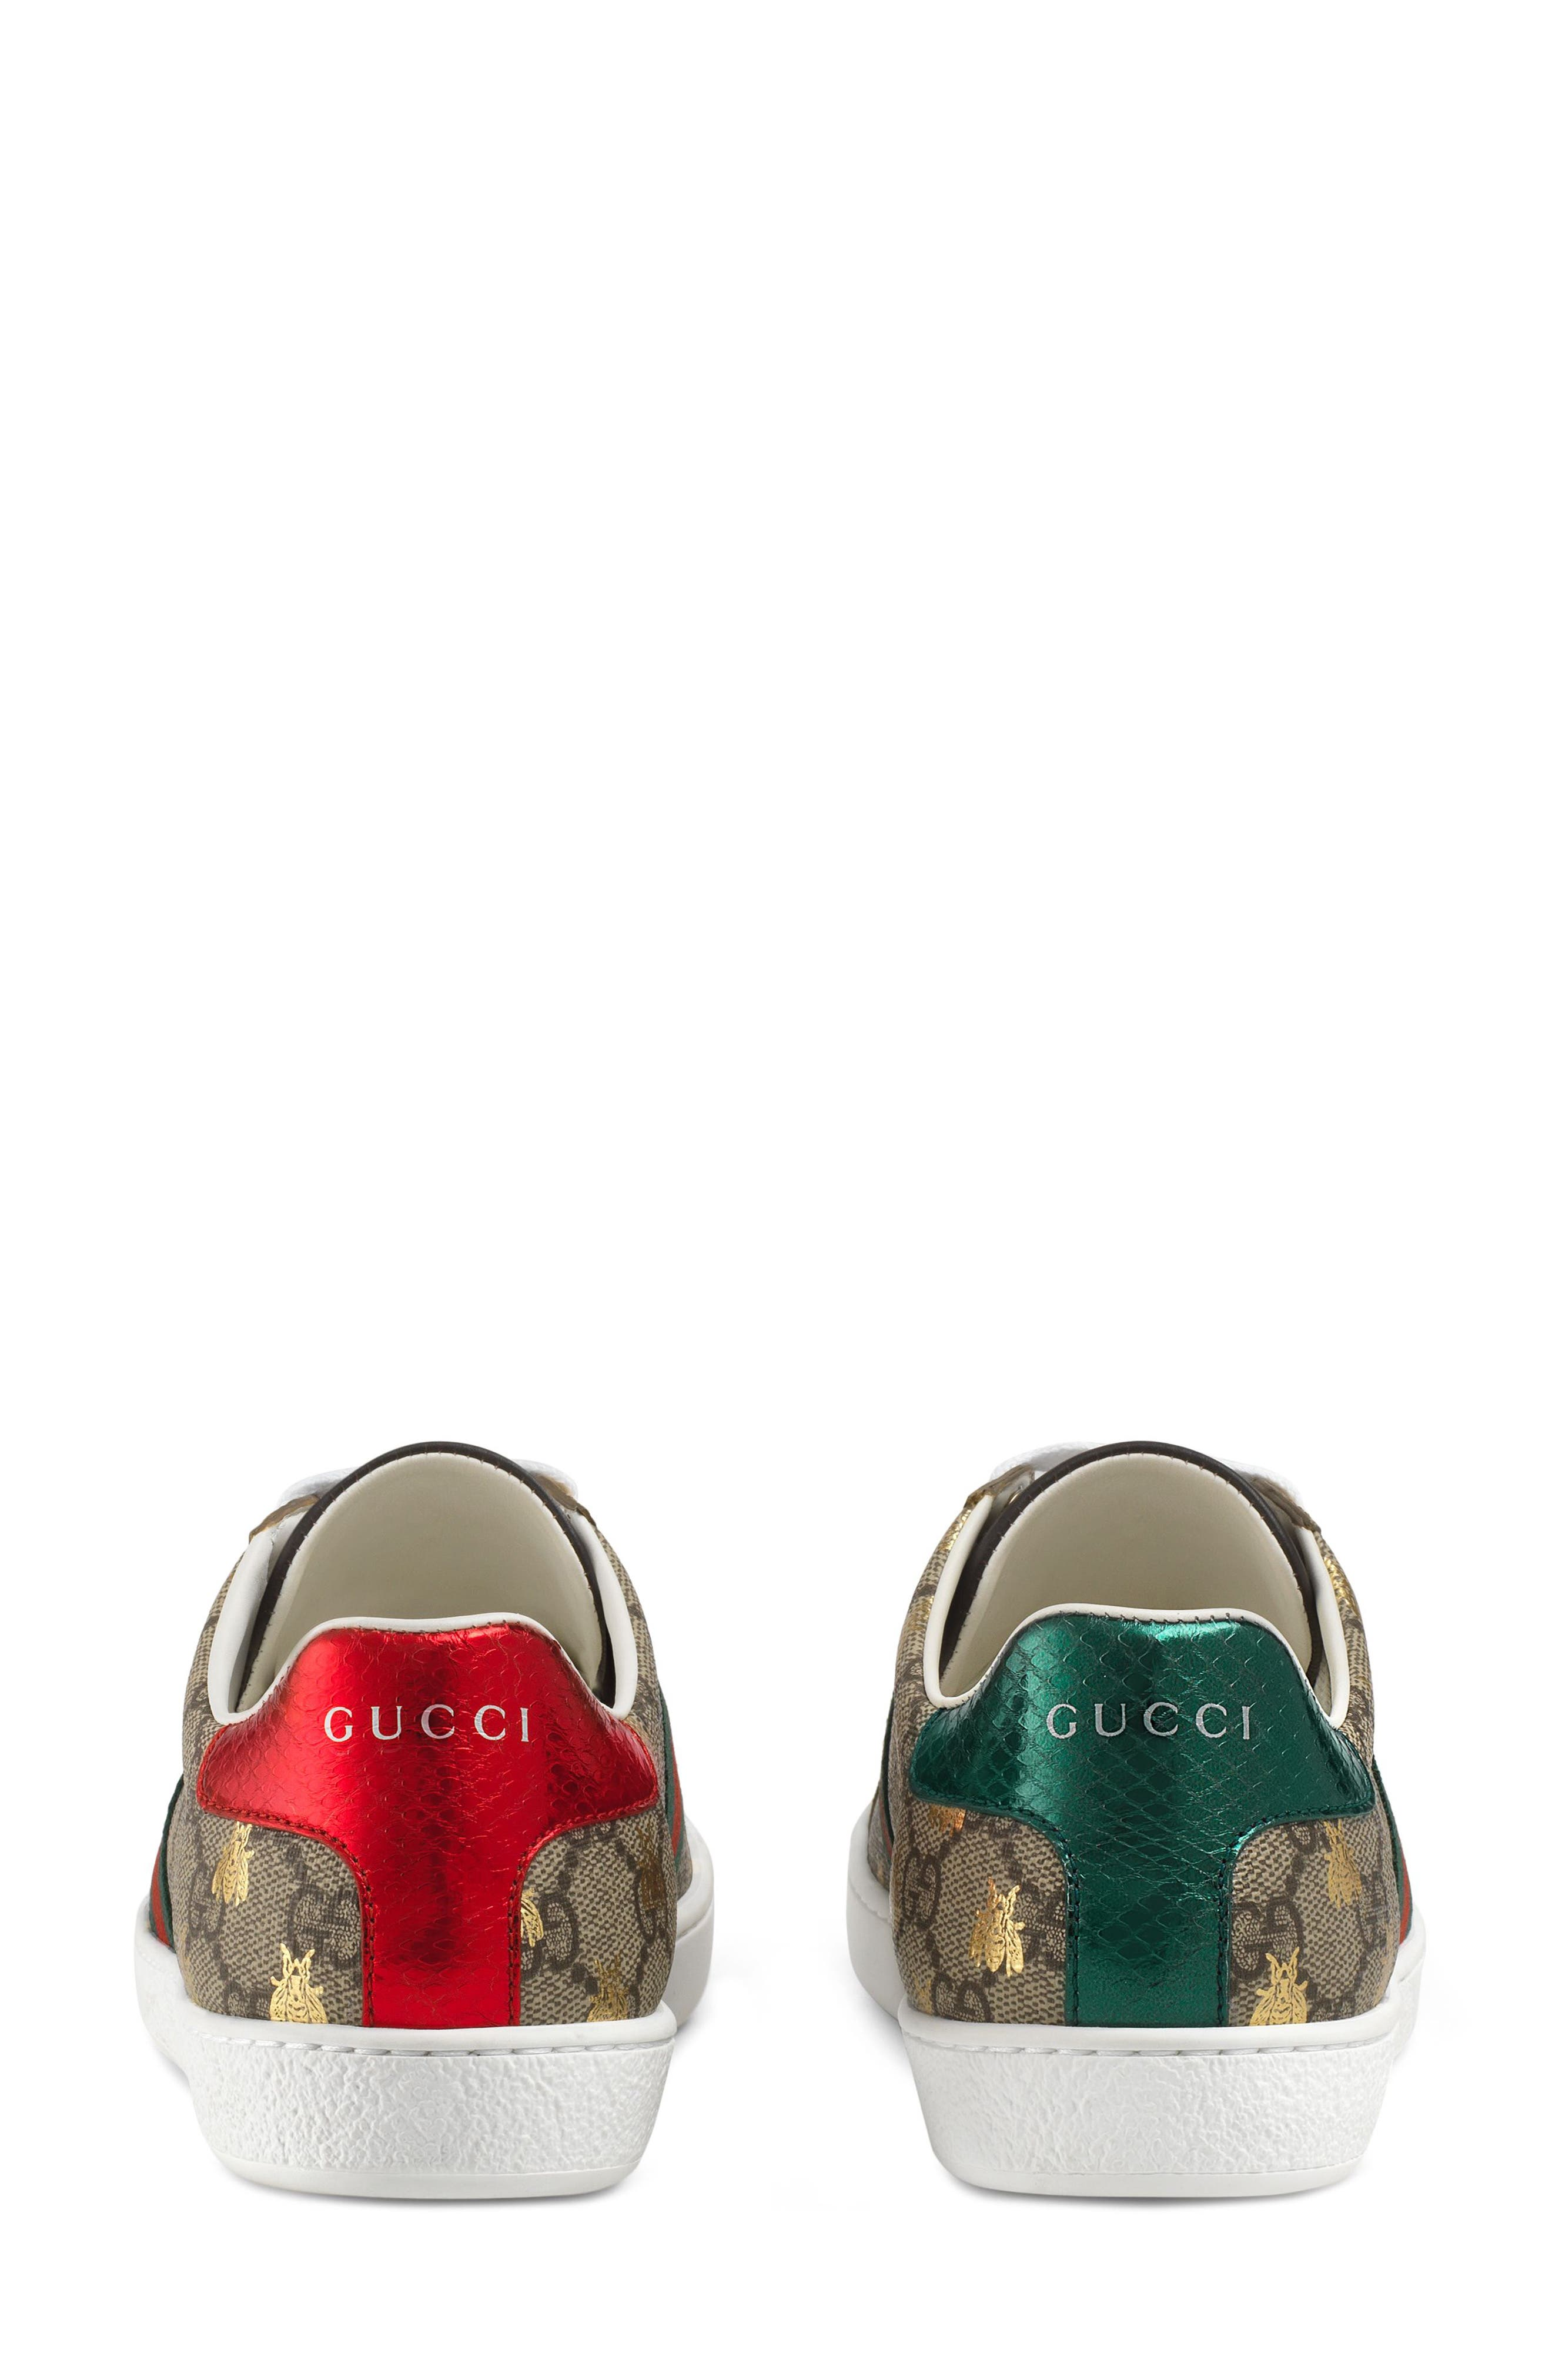 GUCCI, New Ace Monogram Bee Sneaker, Alternate thumbnail 5, color, BEIGE/ GOLD